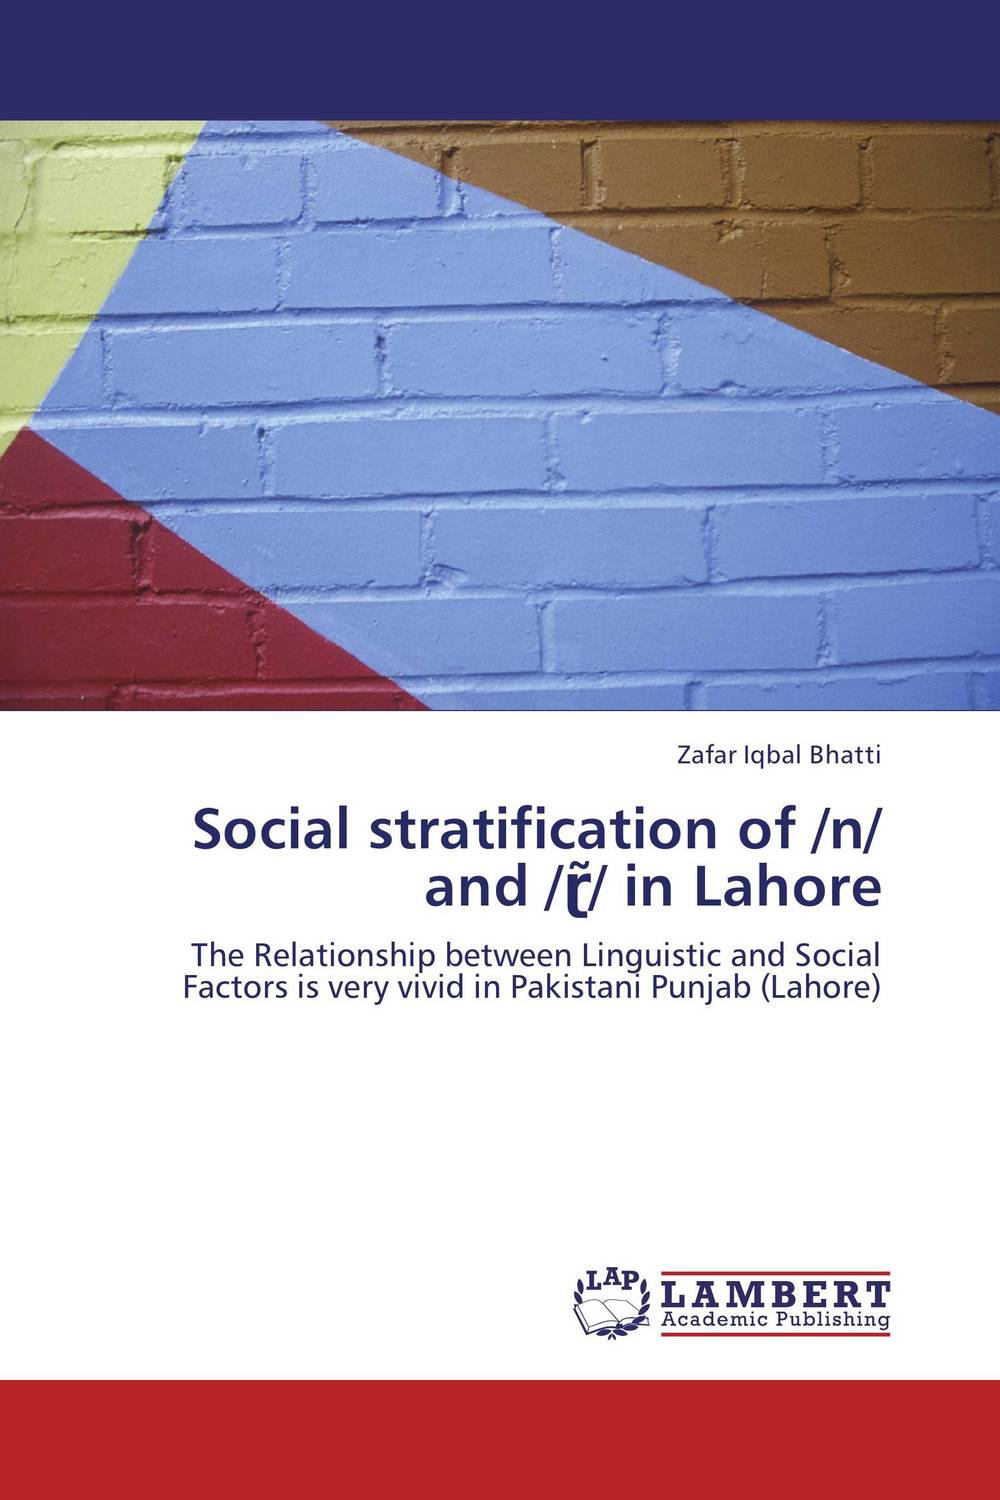 все цены на Social stratification of /n/ and /??/ in Lahore